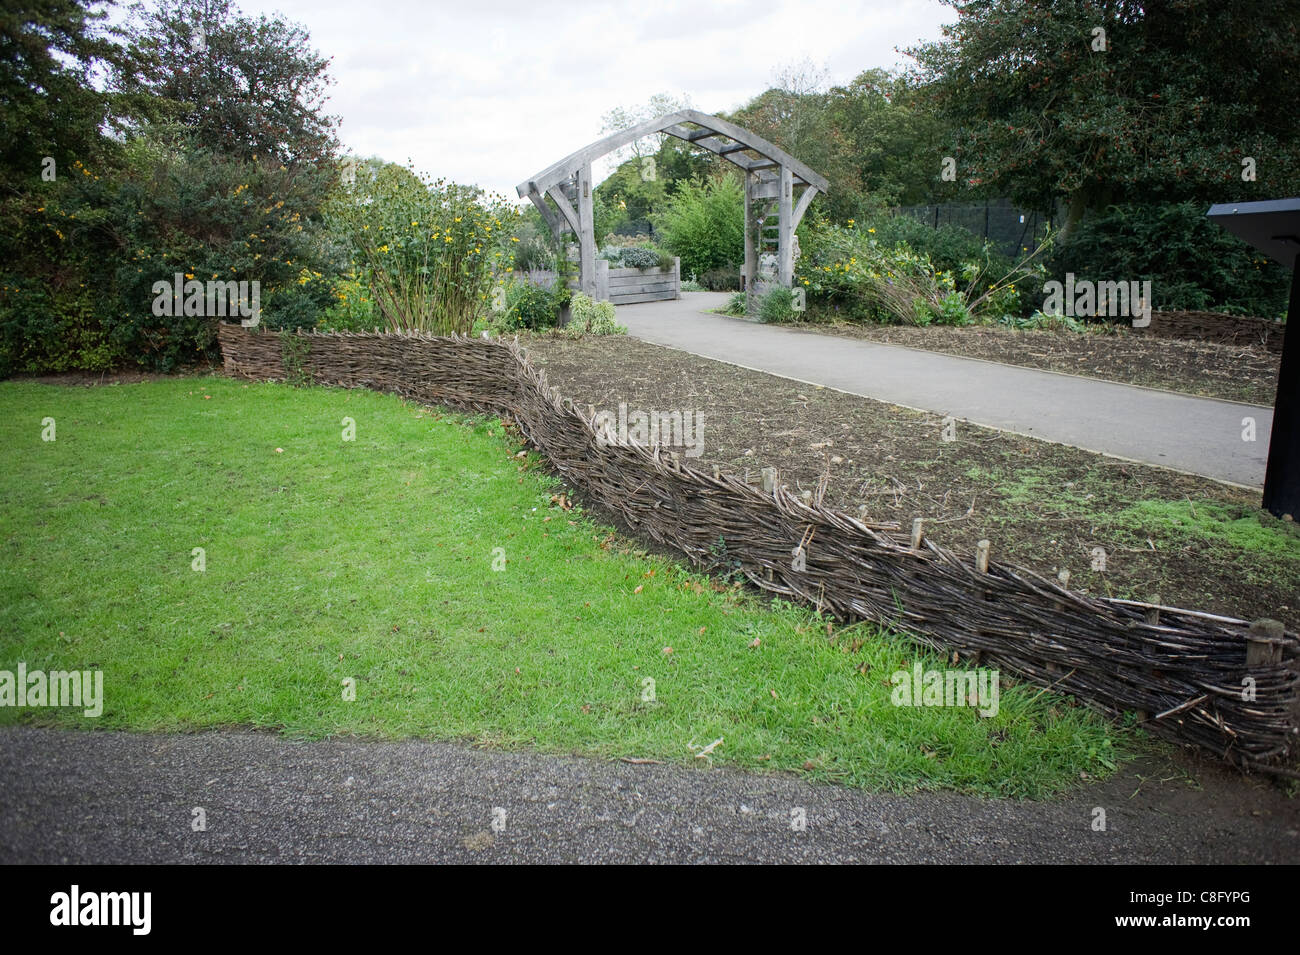 Small Curved Willow Latticed Fencing Dividing A Lawn From A Border   Stock  Image